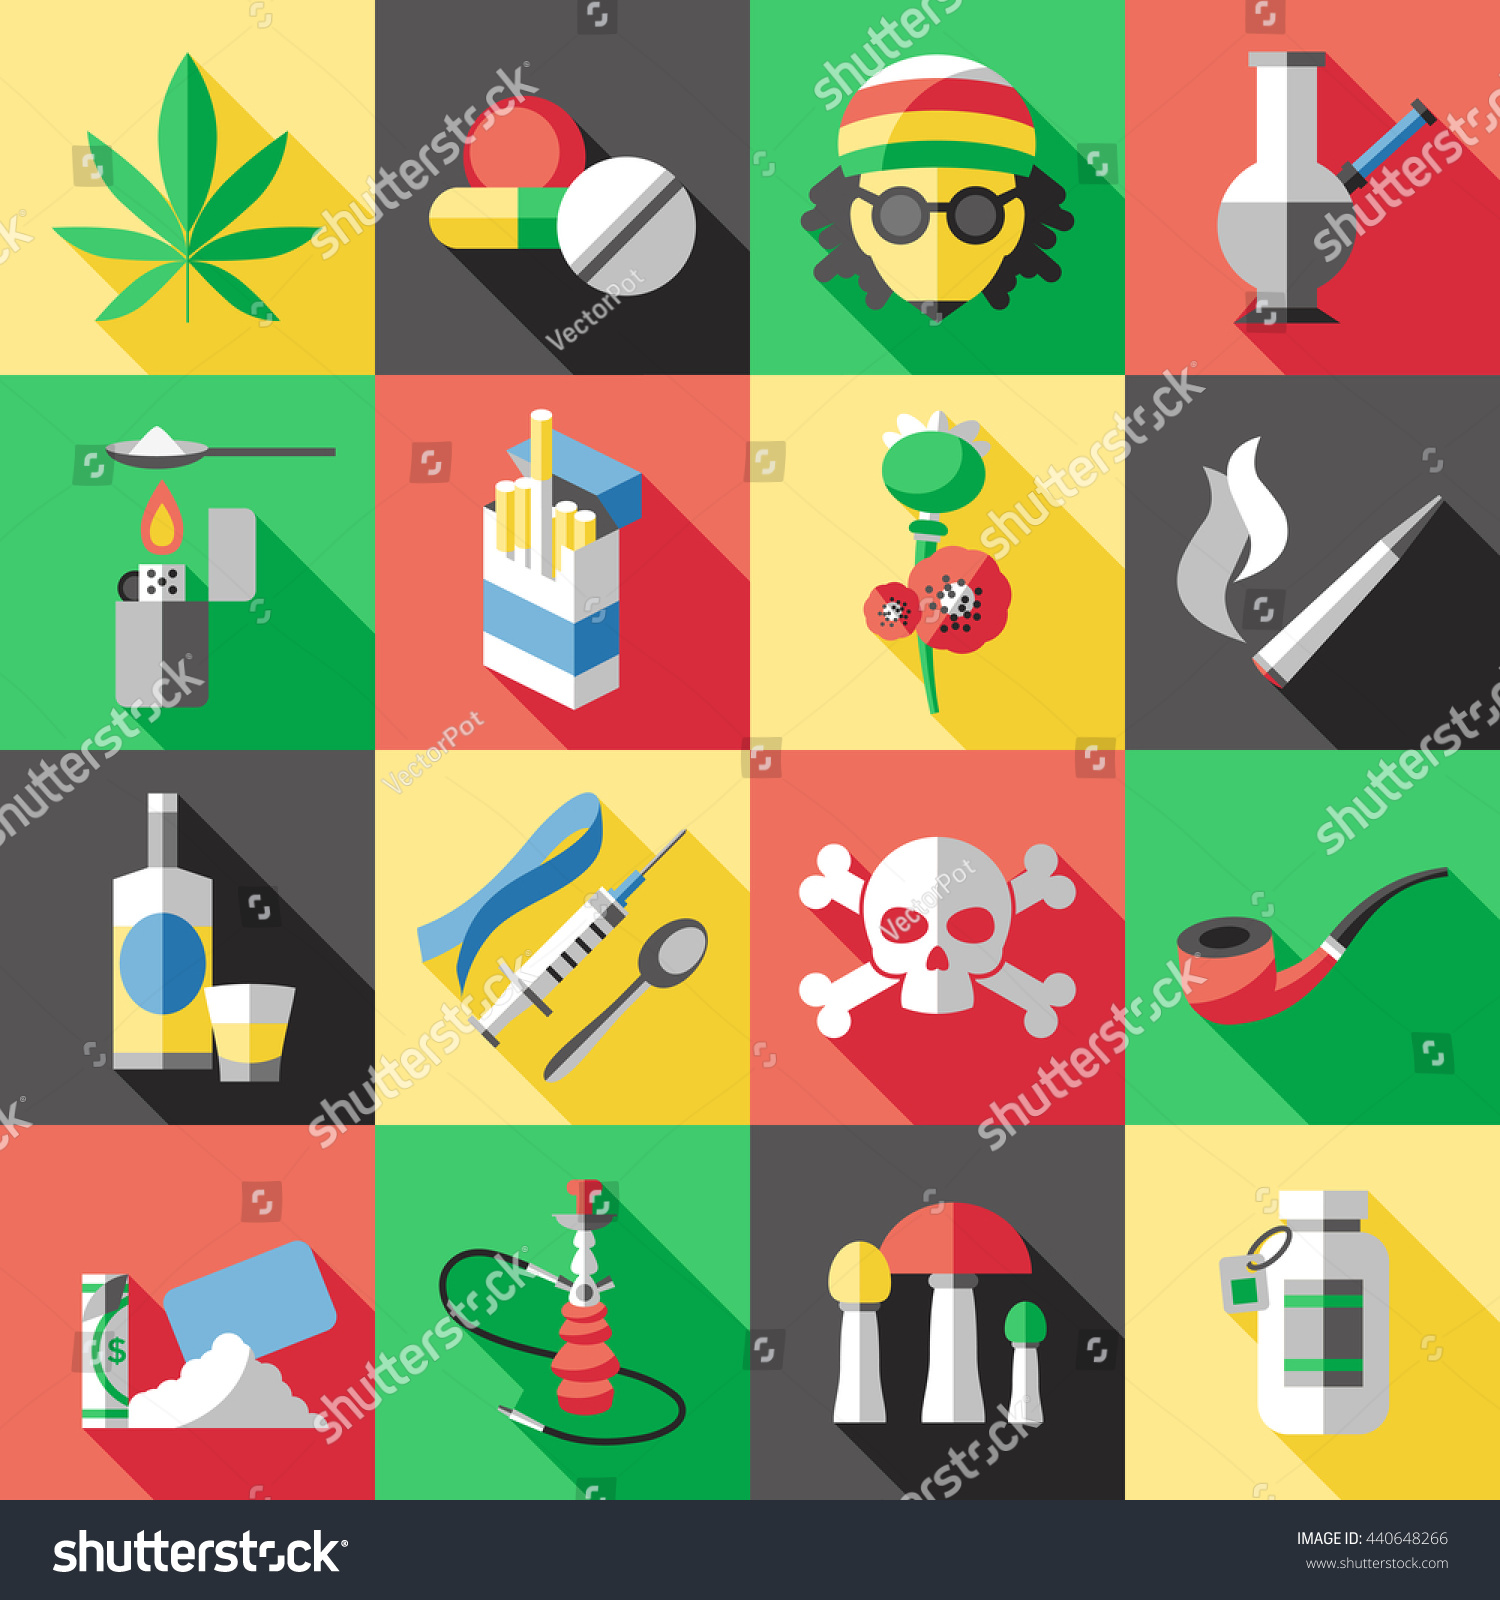 Sixteen Square Flat Drugs Icon Set Stock Vector 440648266 - Shutterstock